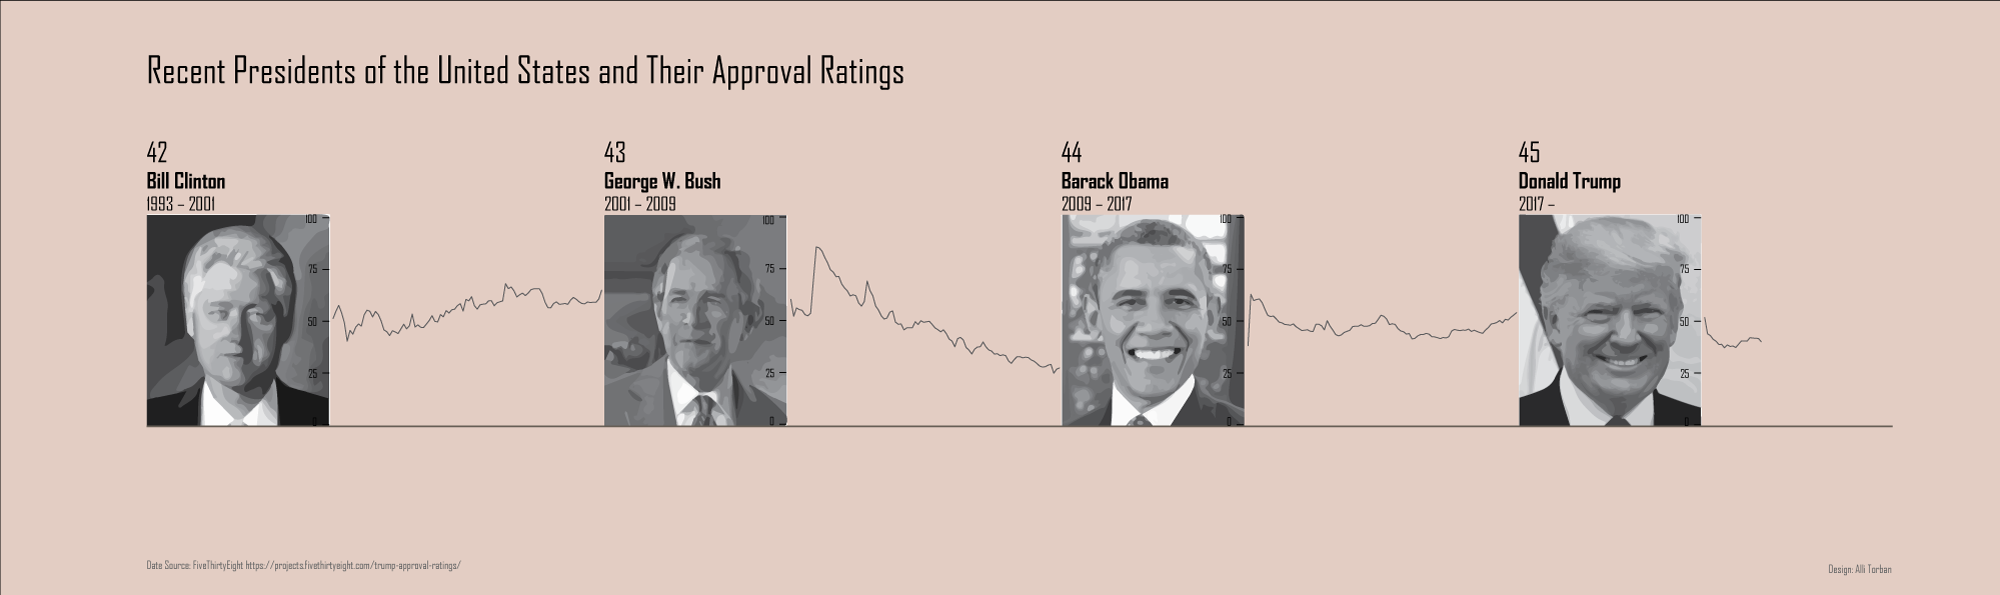 My inspired viz - timeline of recent US Presidents and their approval ratings in between.